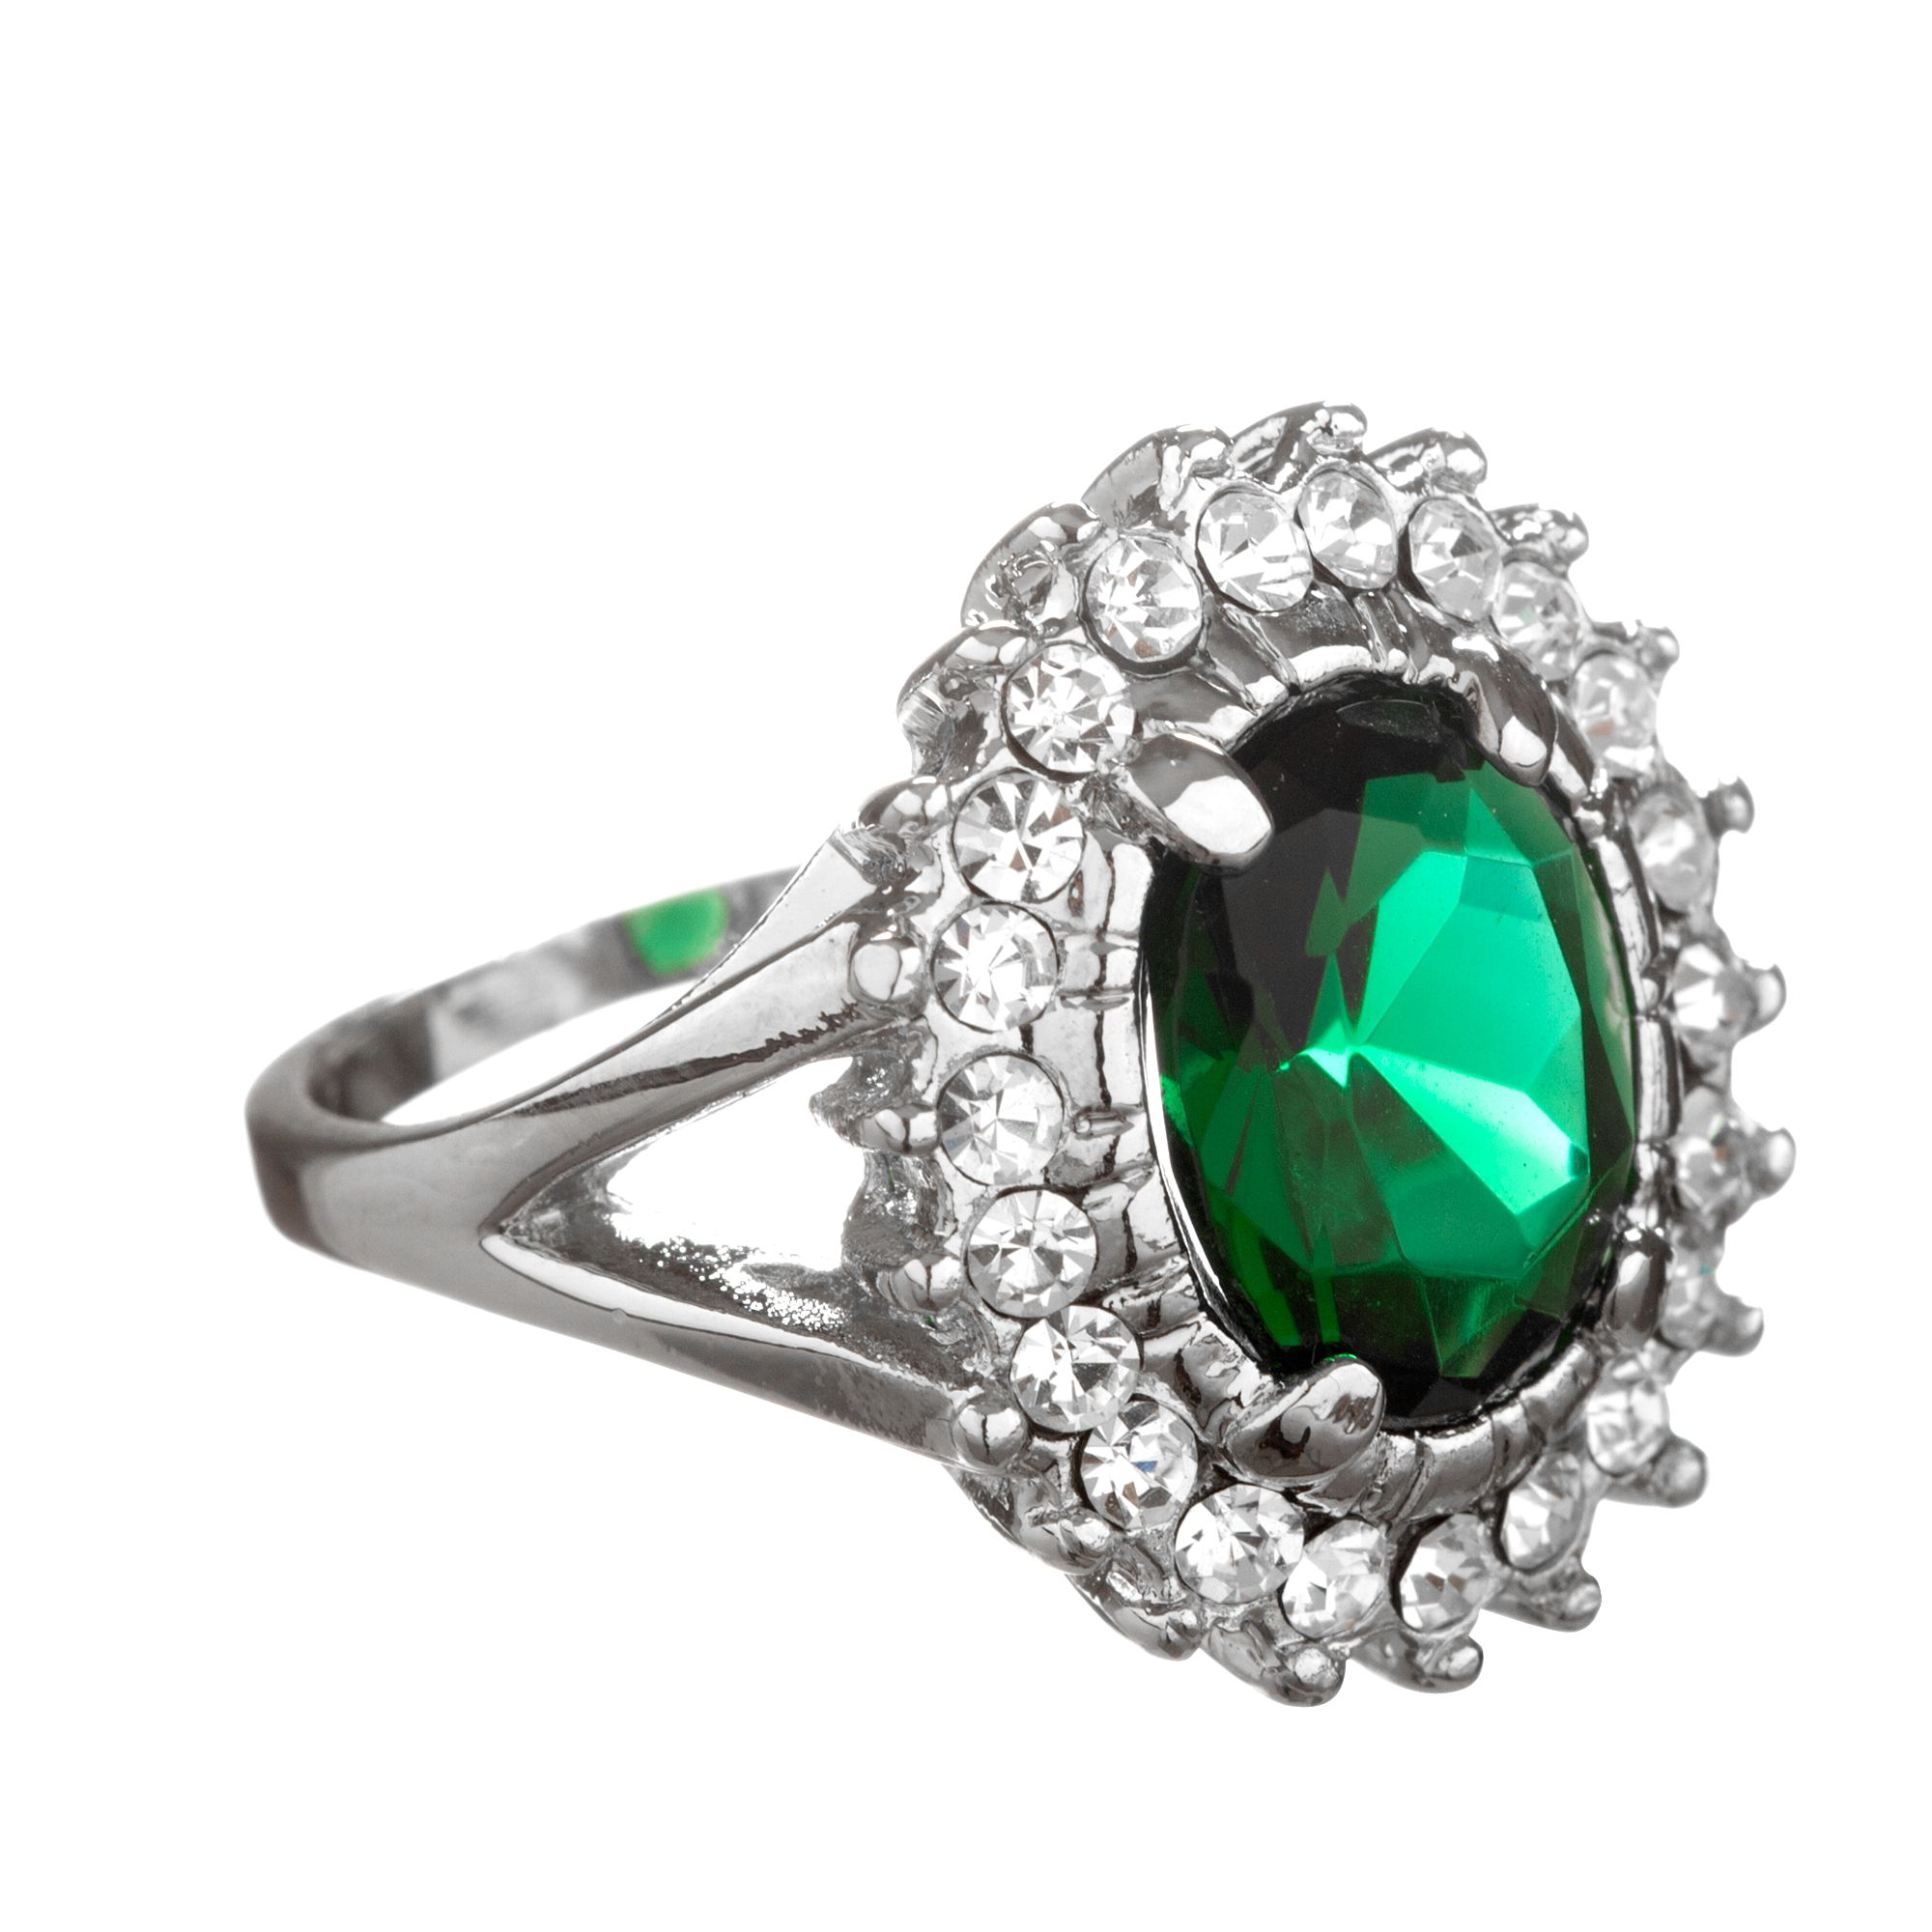 virginia img garnet green diamond tsavorite elizabeth emeral from henry and products rings in ring the collection